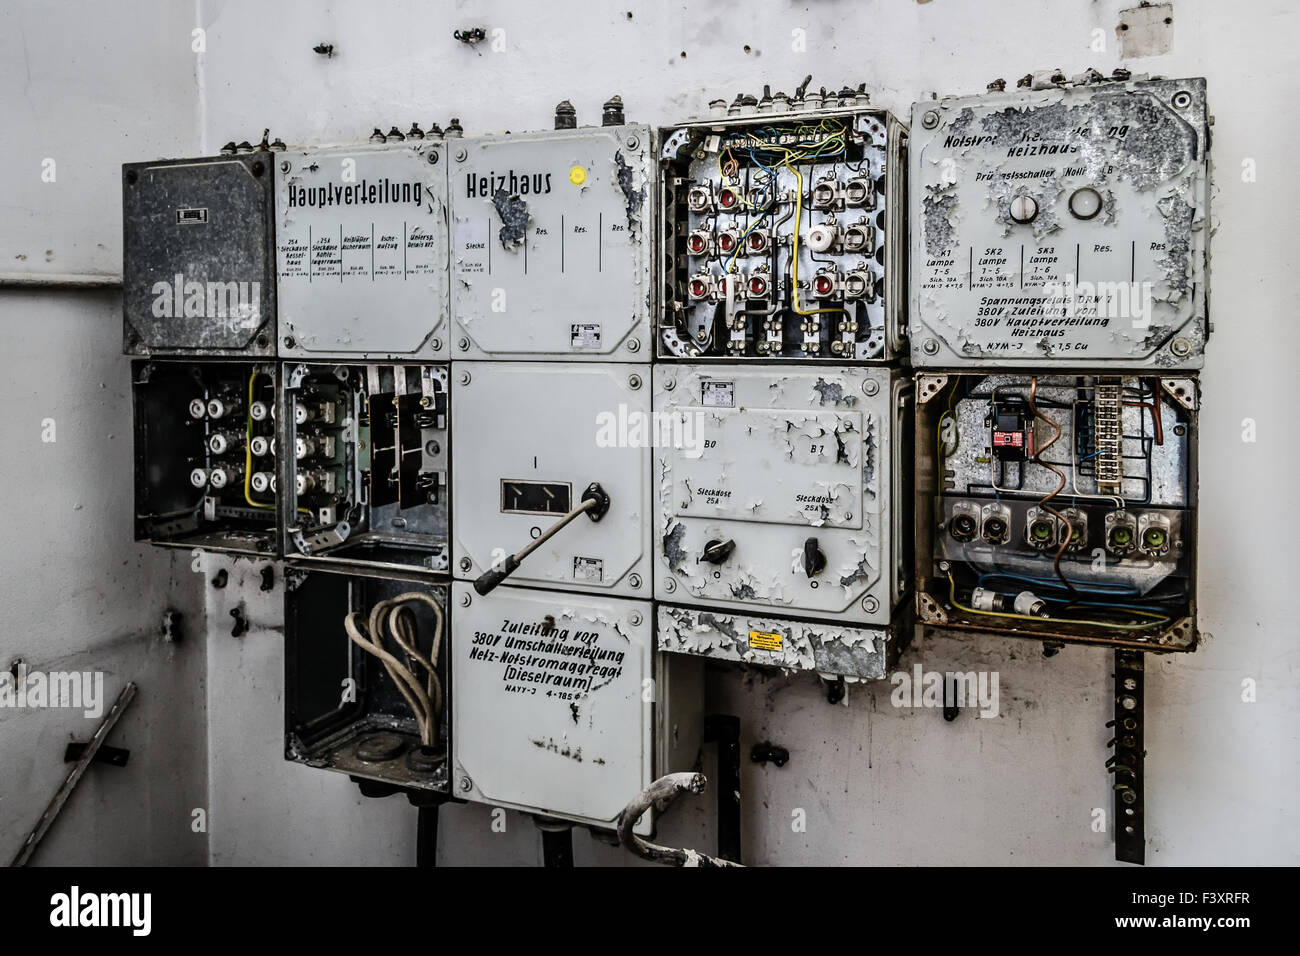 old fuse box F3XRFR old fuse box stock photo, royalty free image 88485035 alamy  at bayanpartner.co